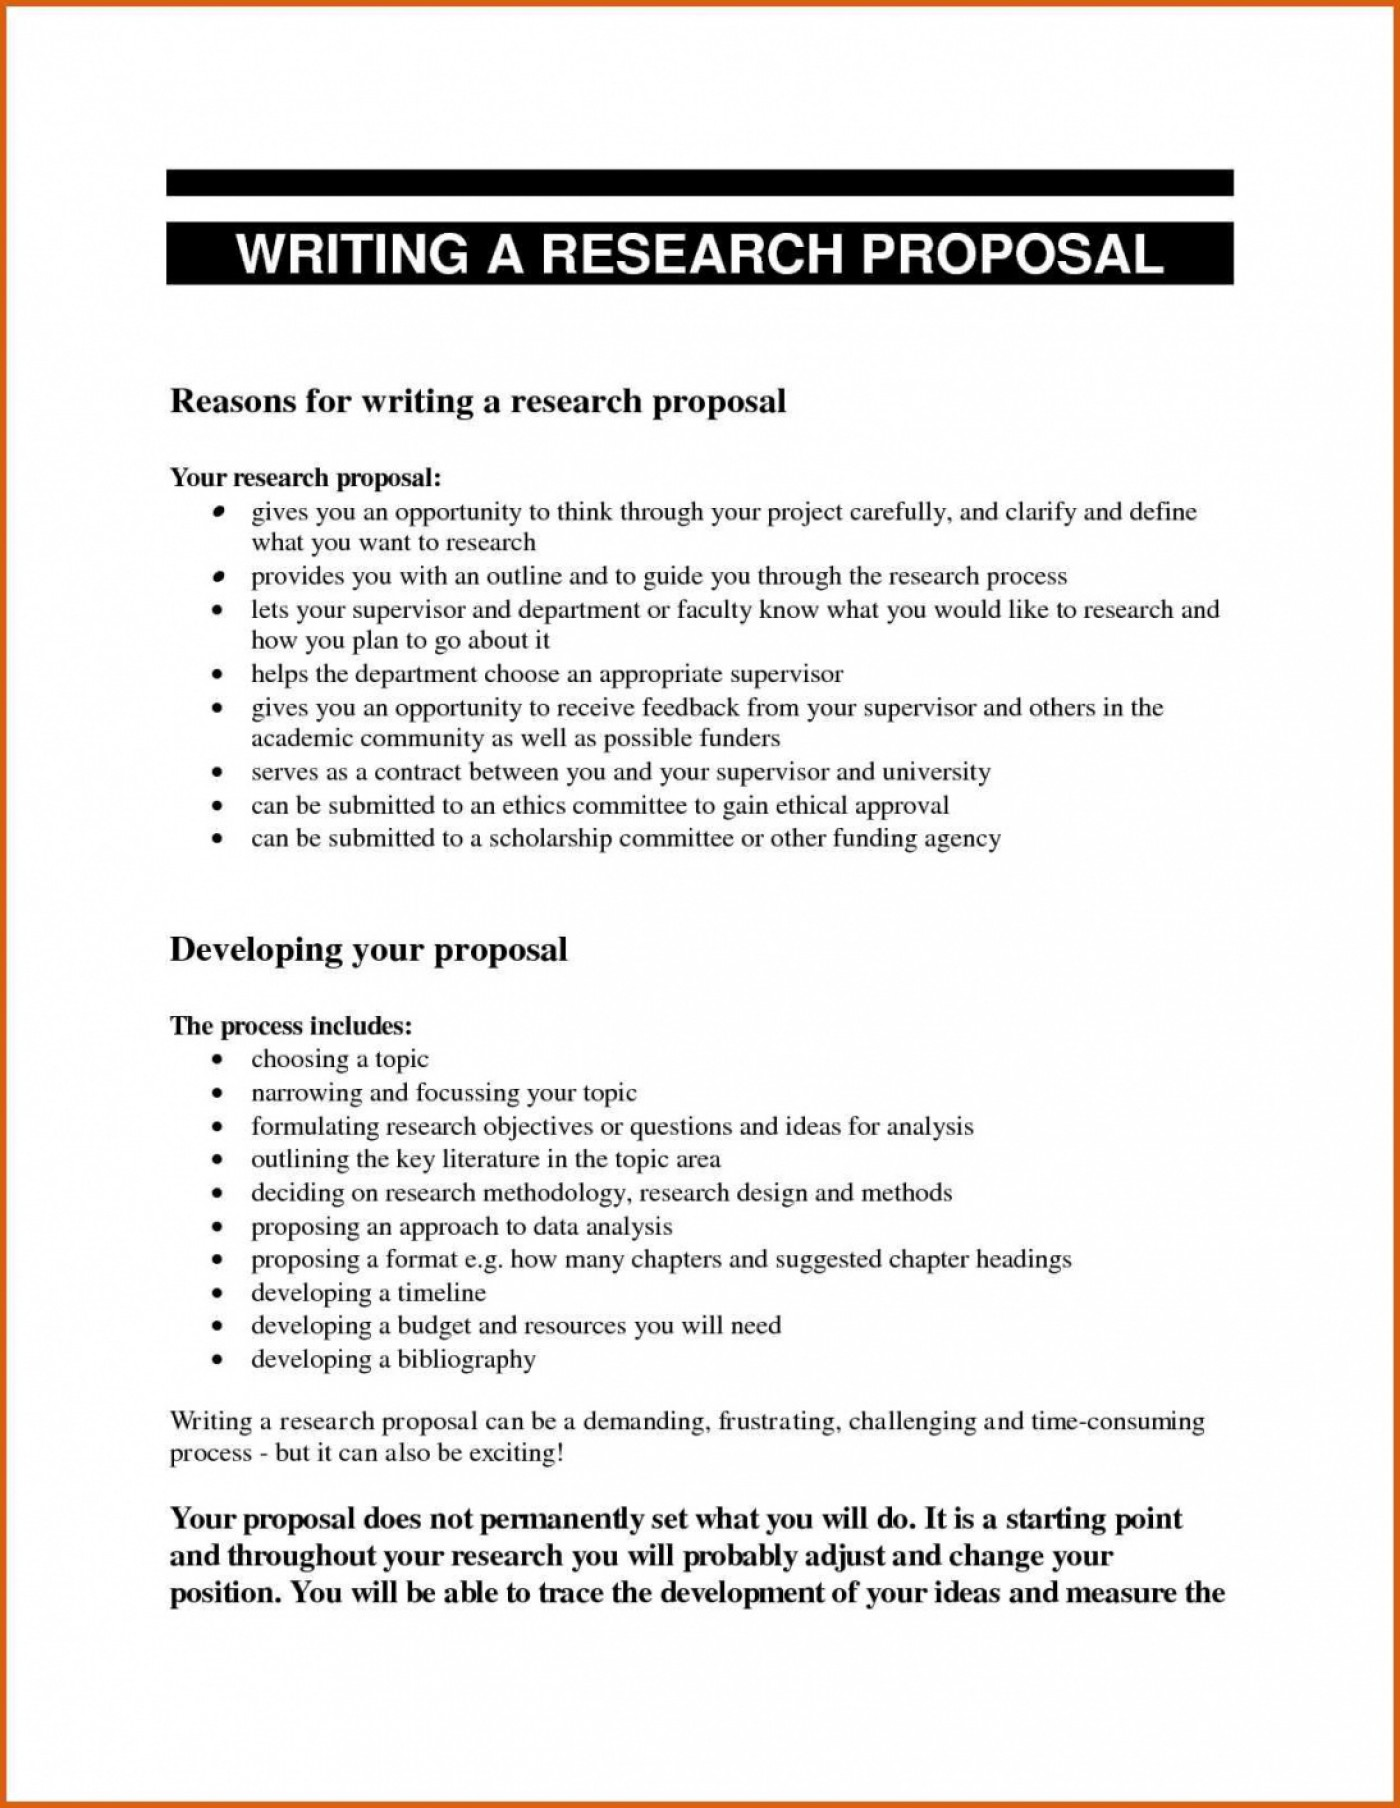 Essay On Management And Leadership  Essays About Health also What Is A Thesis Statement In A Essay  Gender Equality Essay Example Research Proposal Paper  Good Thesis Statements For Essays